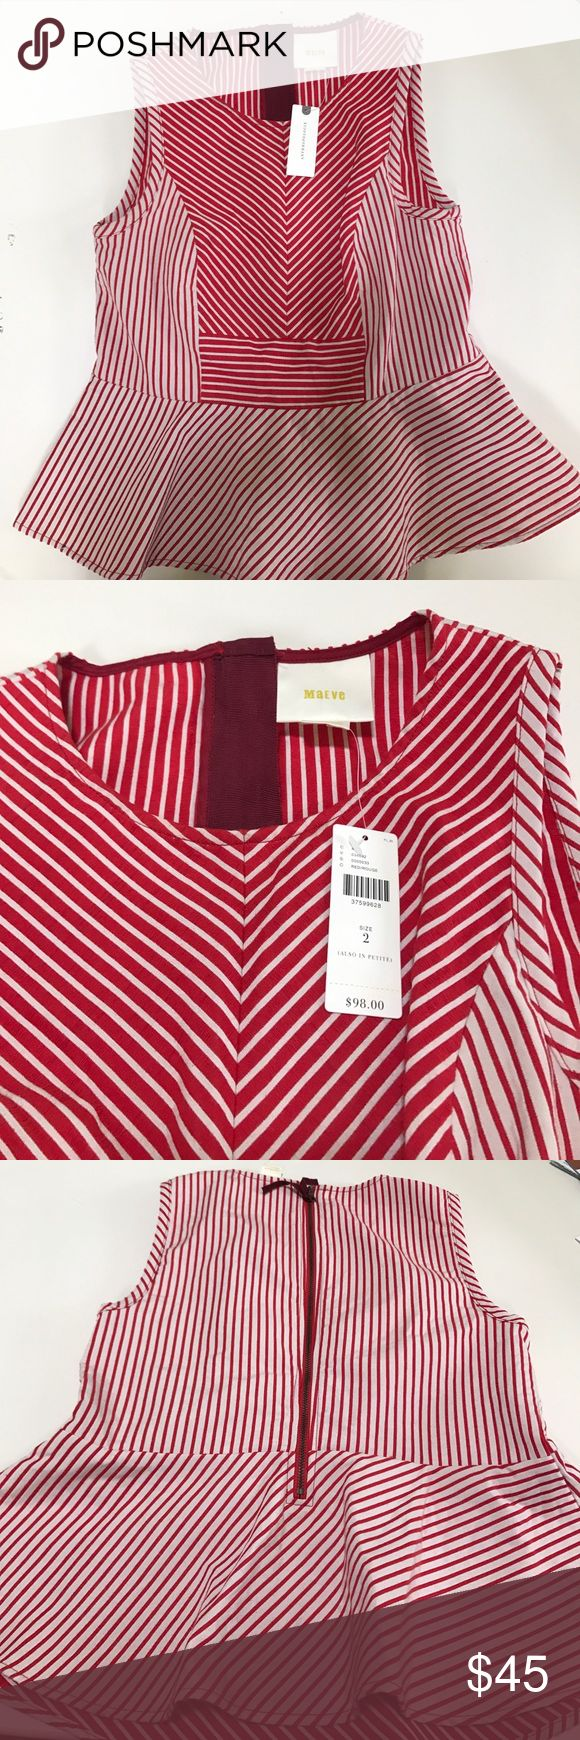 Anthropologie Maeve peplum top. Red and white stripe peplum top size2 NWT. Reasonable Offers are welcome Anthropologie Tops Blouses